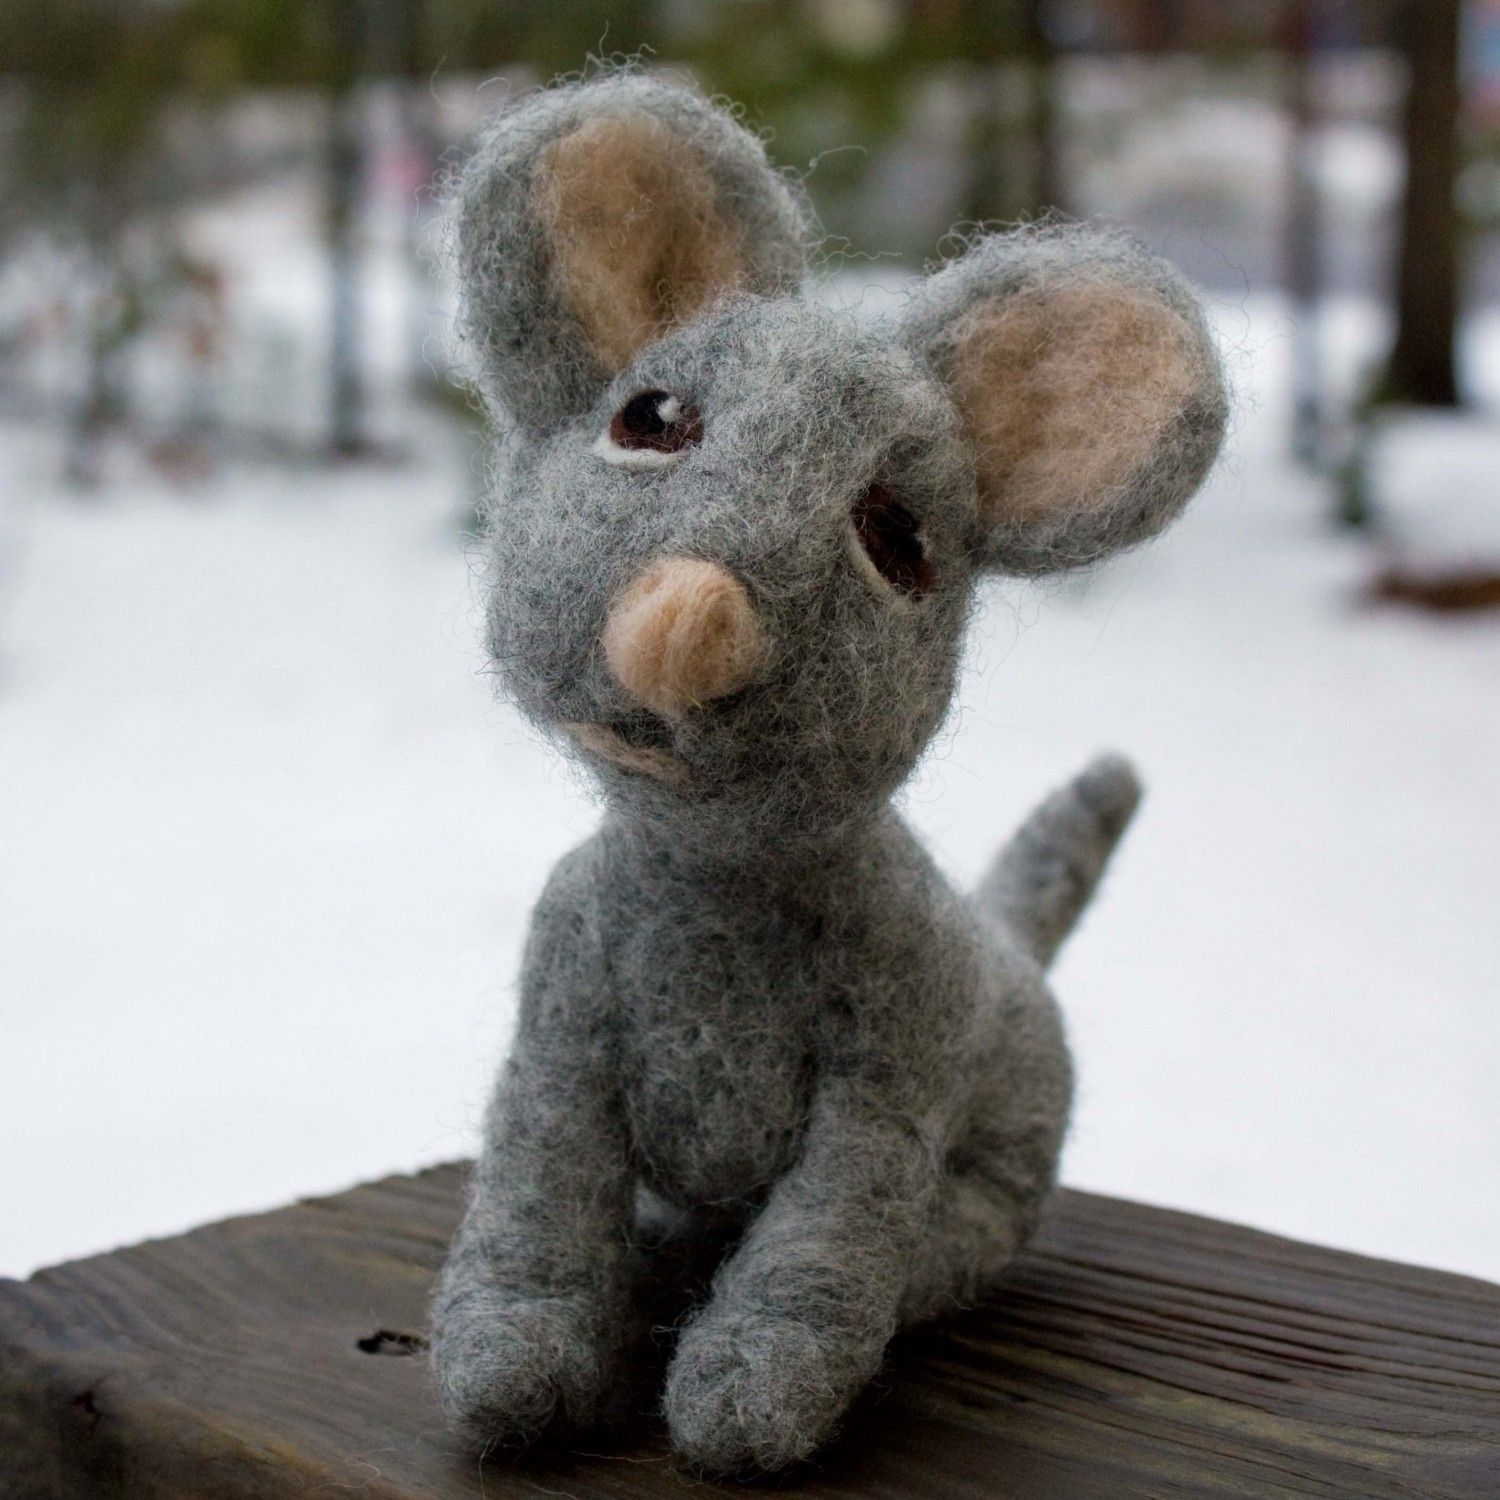 Miniature Bespoke Needle Felted Mouse Wool Sculpture by WoolSculptures on Etsy